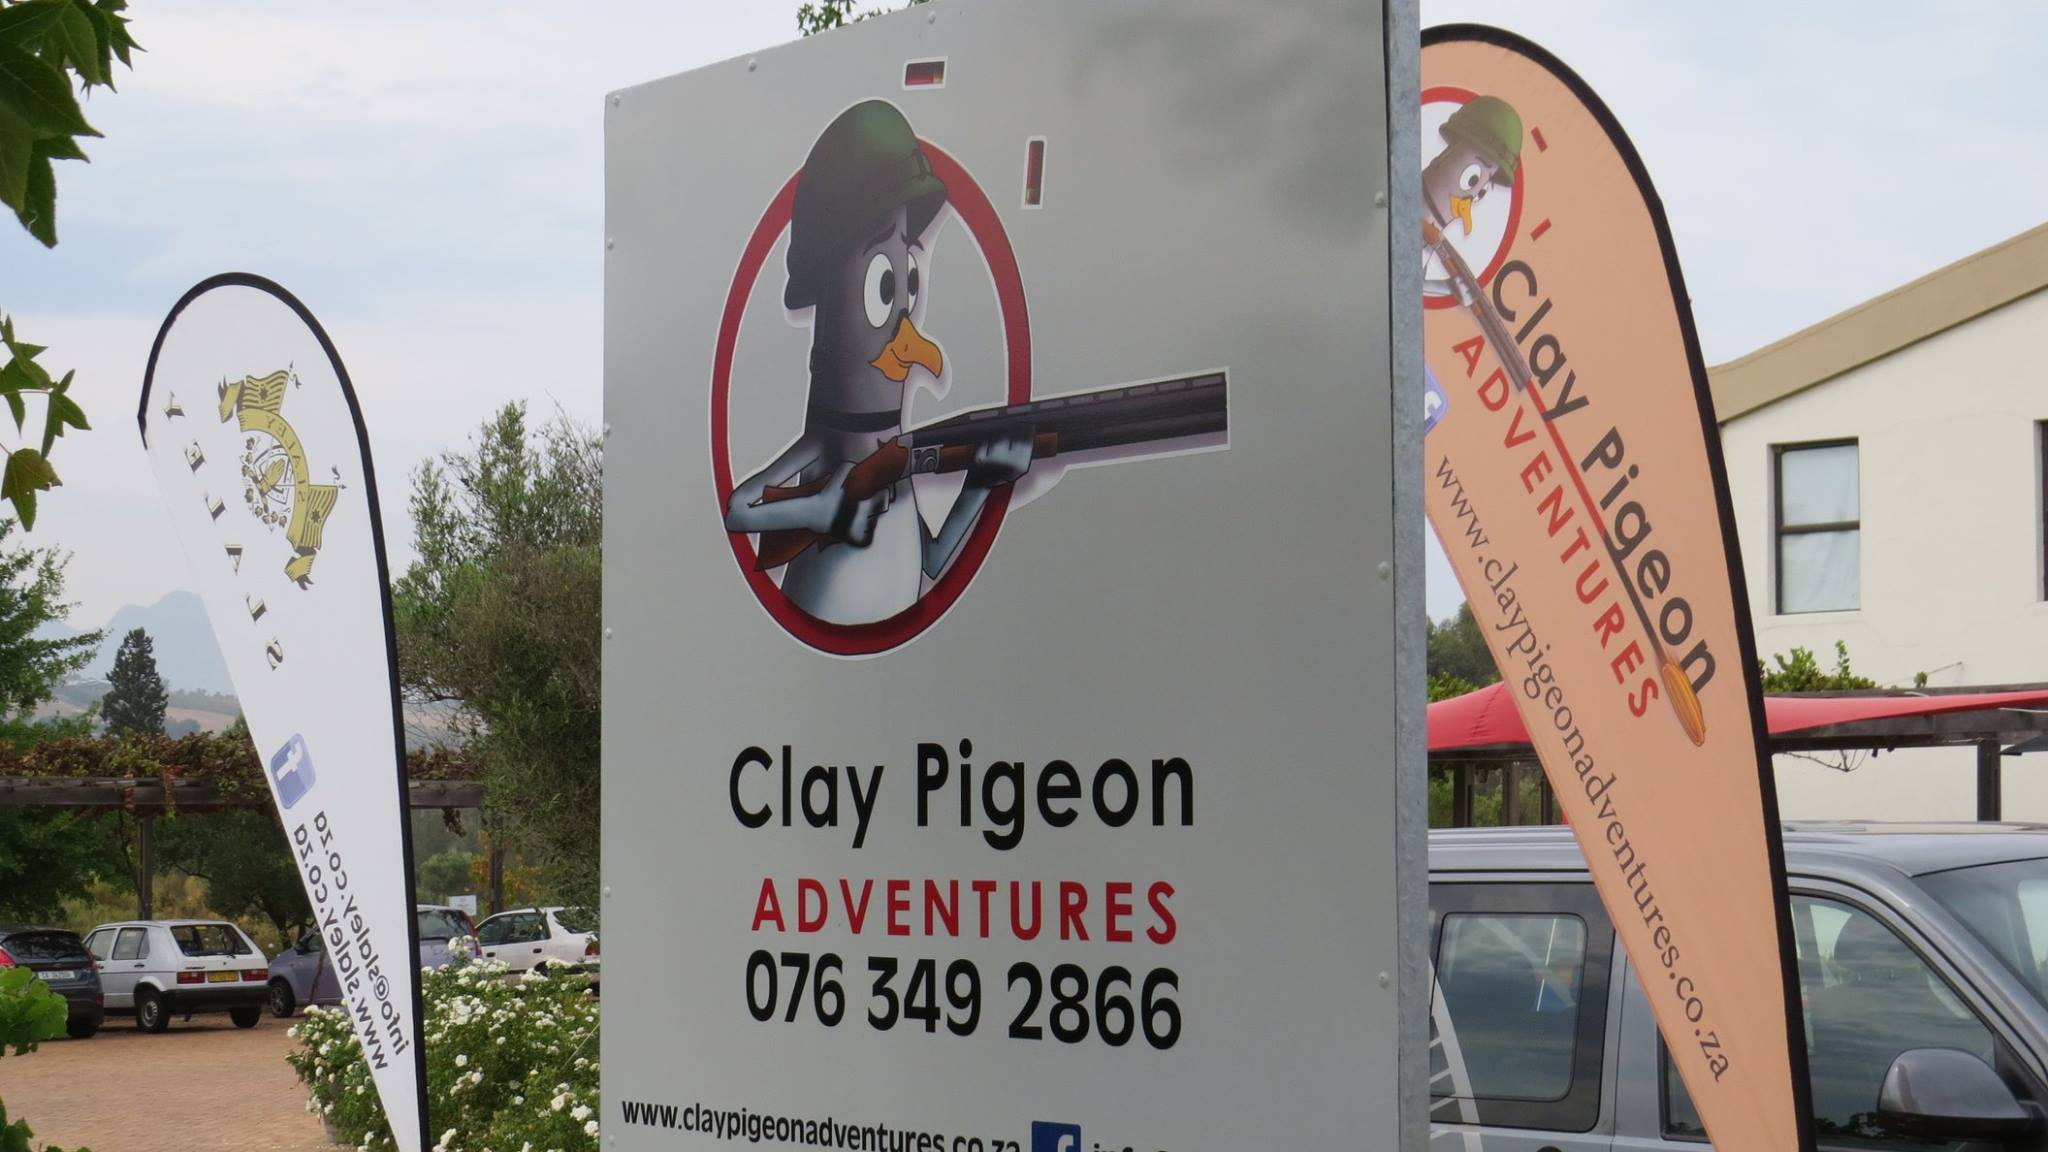 Information board about the Clay Pigeon shooting at Slaley